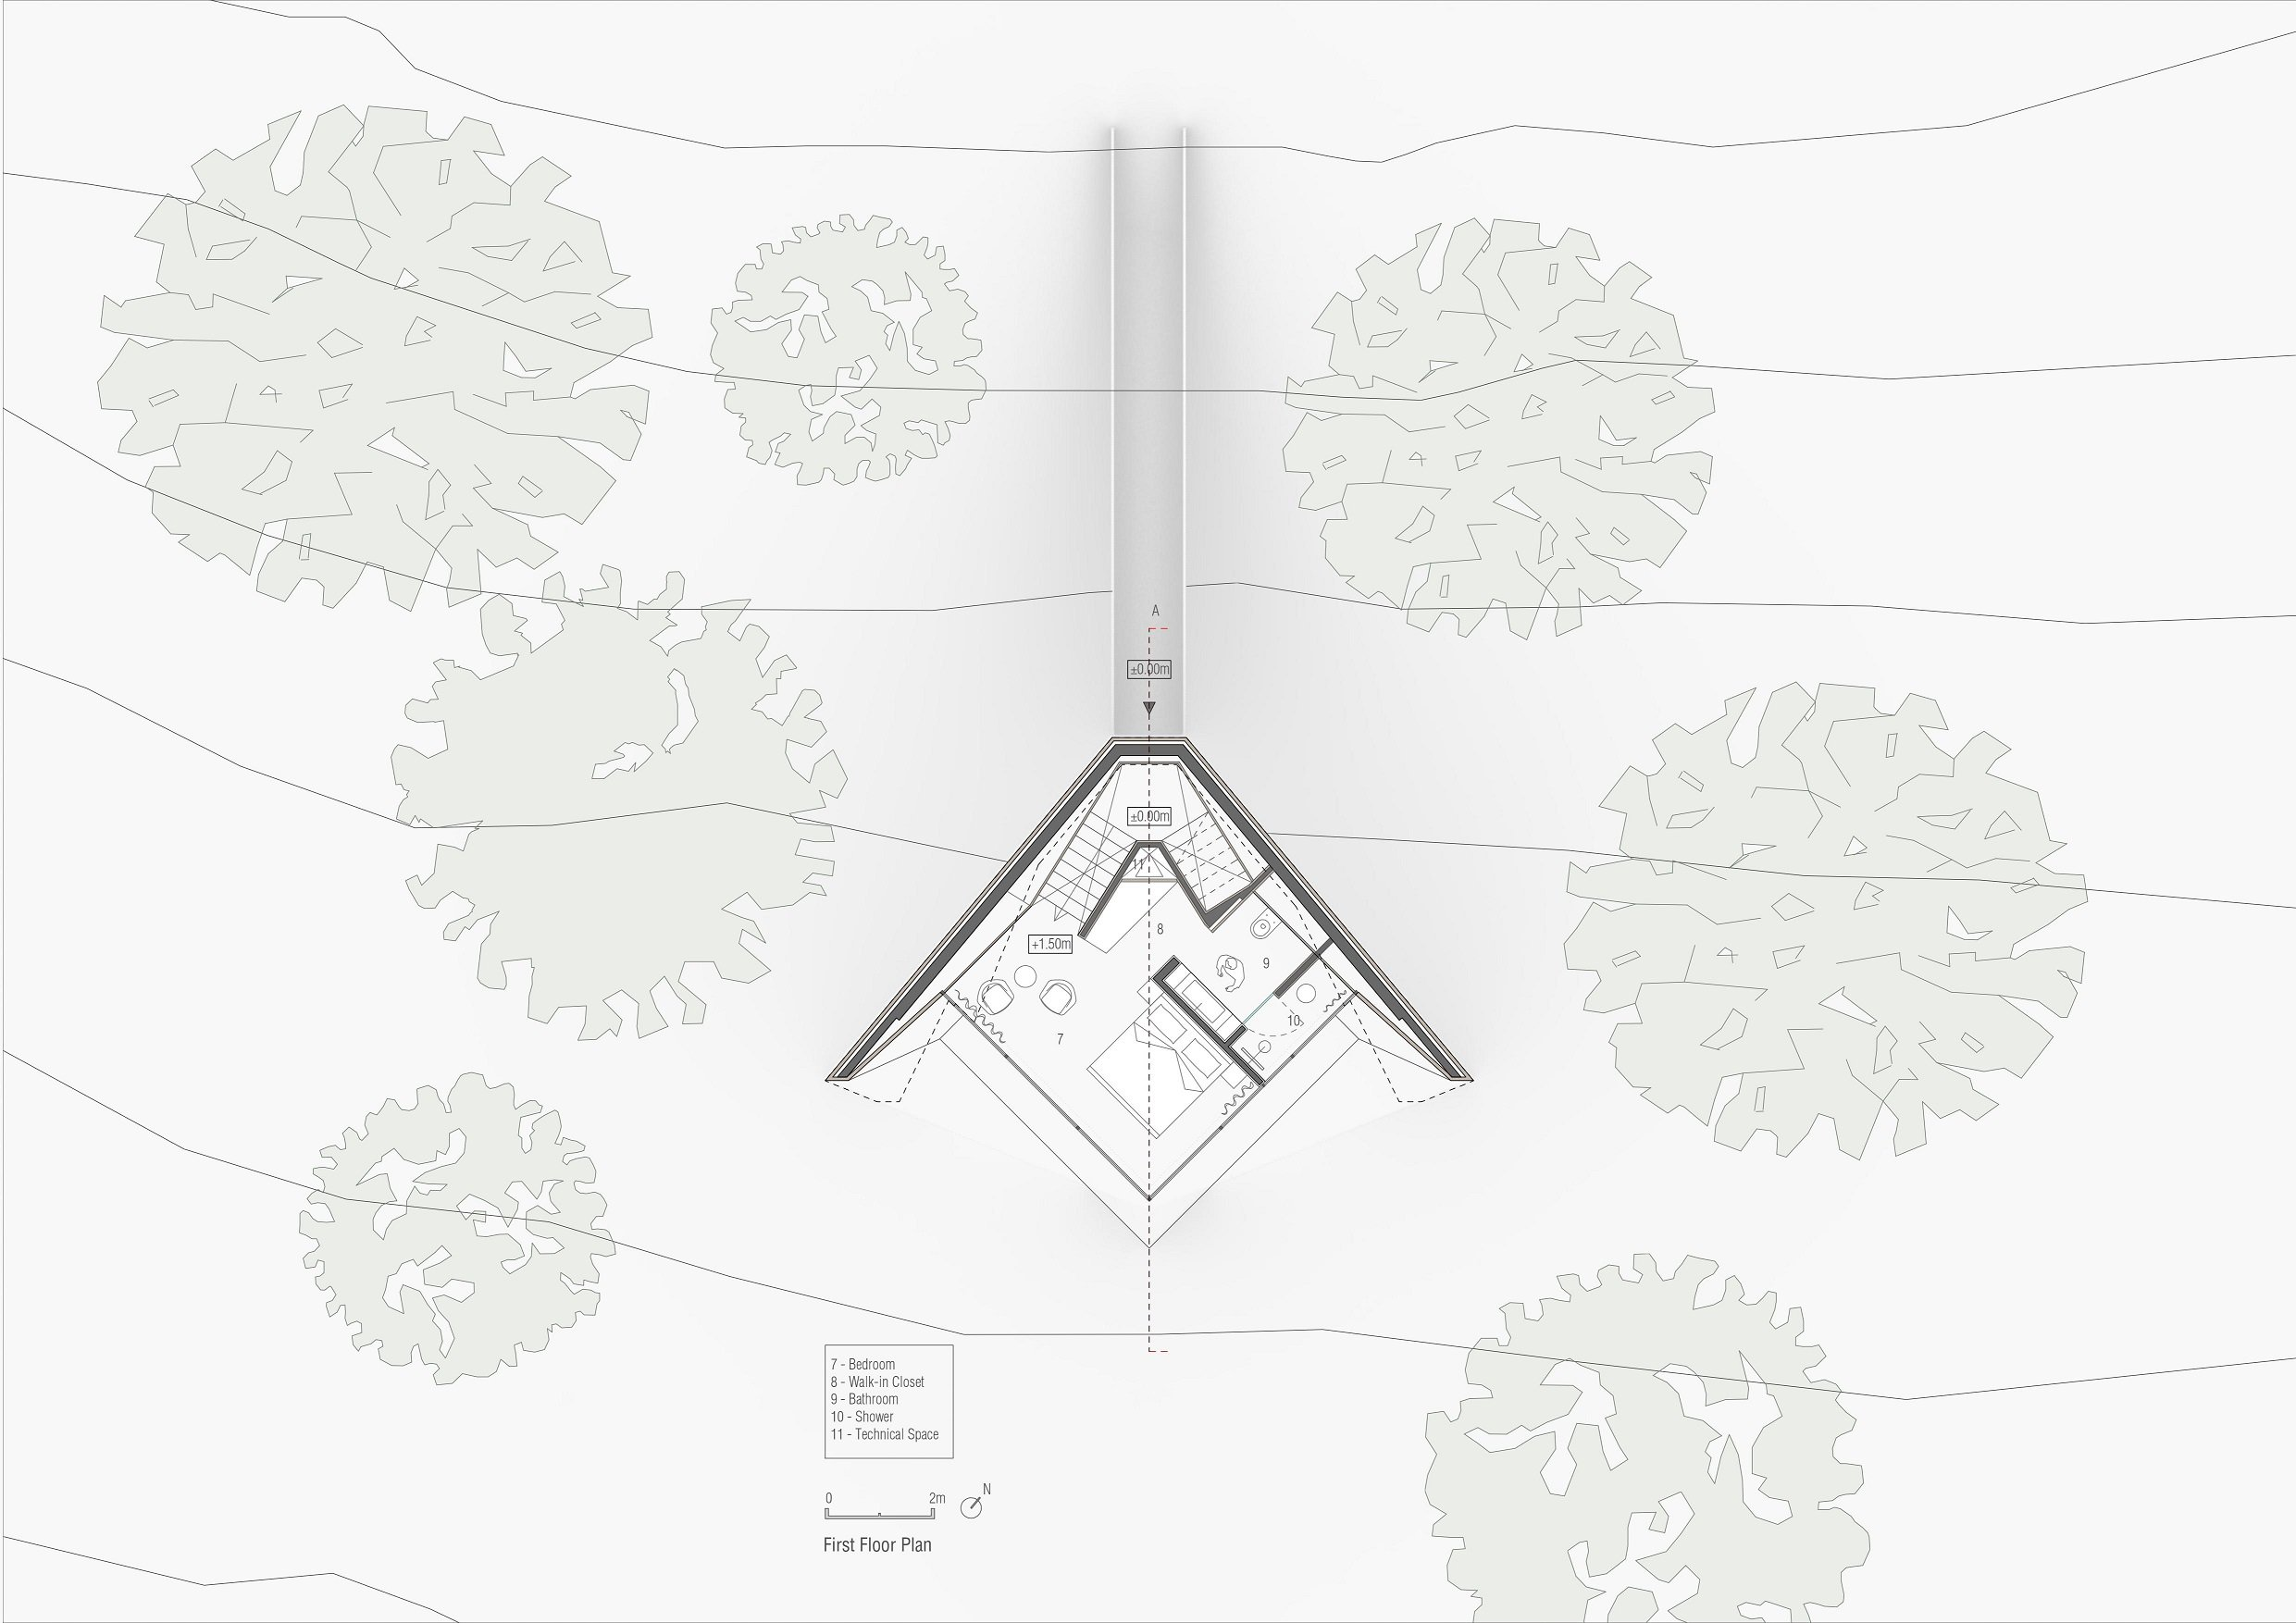 First Floor Plan Peter Pichler Architecture